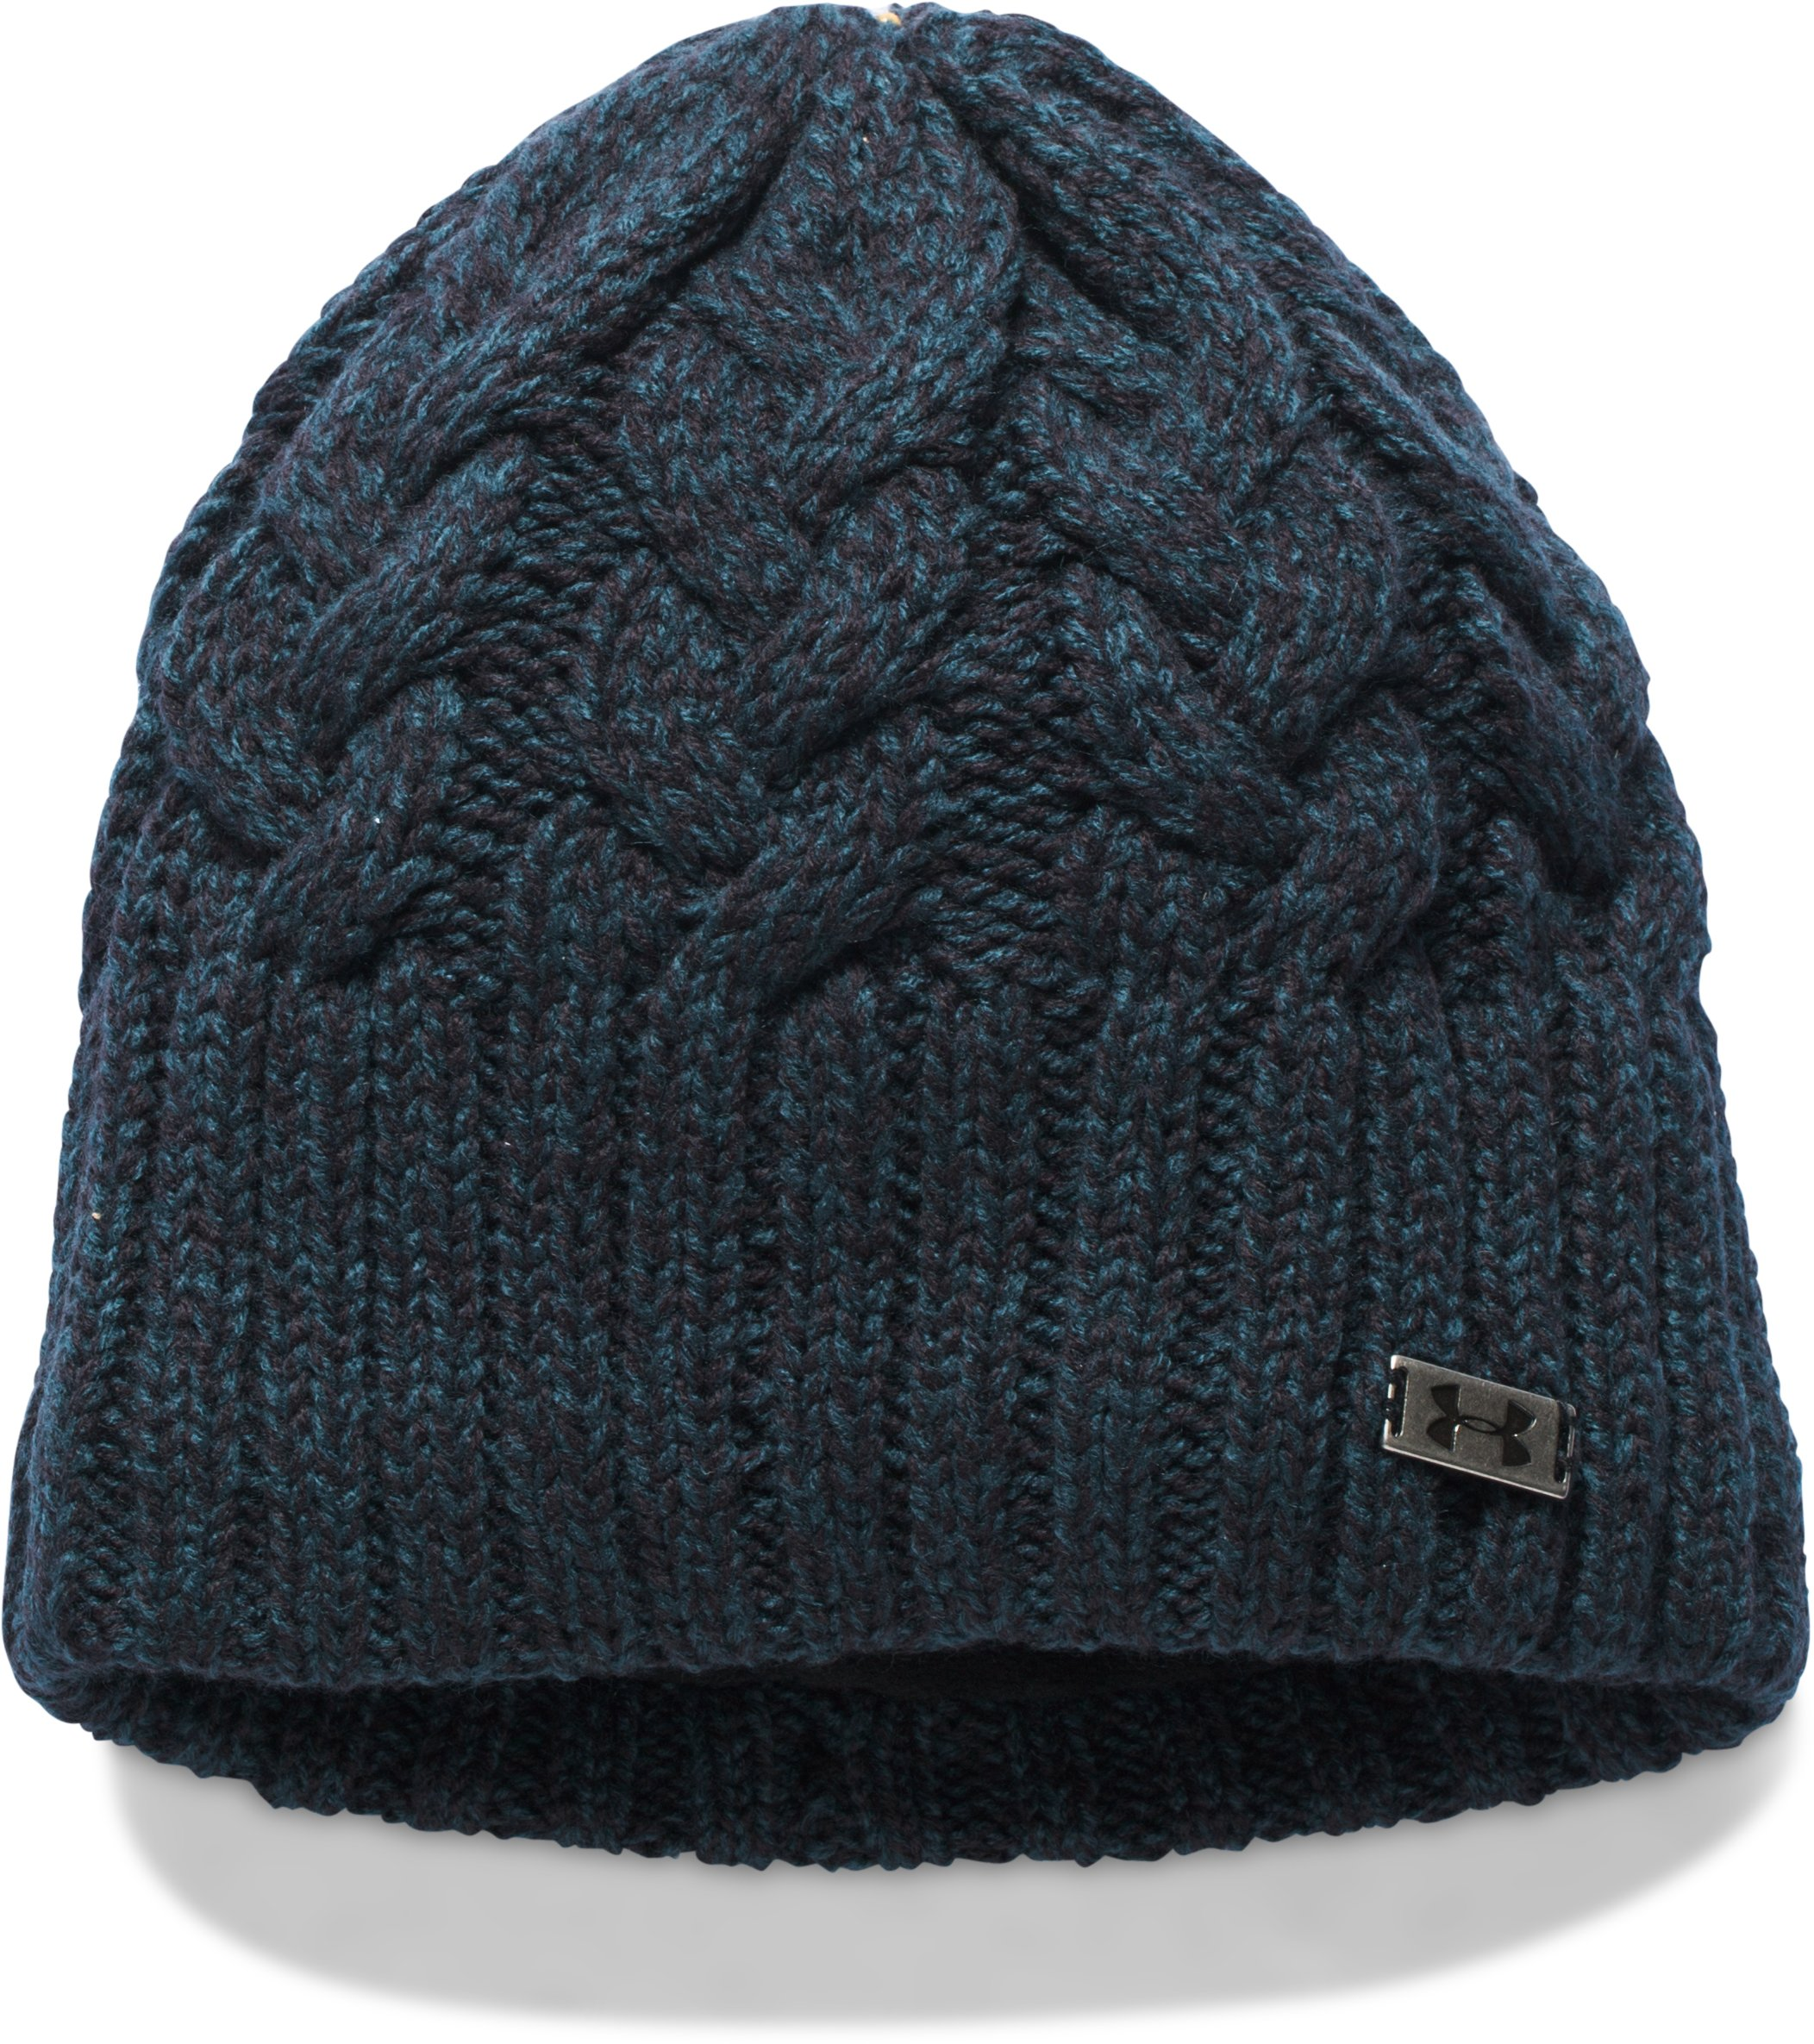 Women's UA Around Town Beanie, NOVA TEAL, undefined